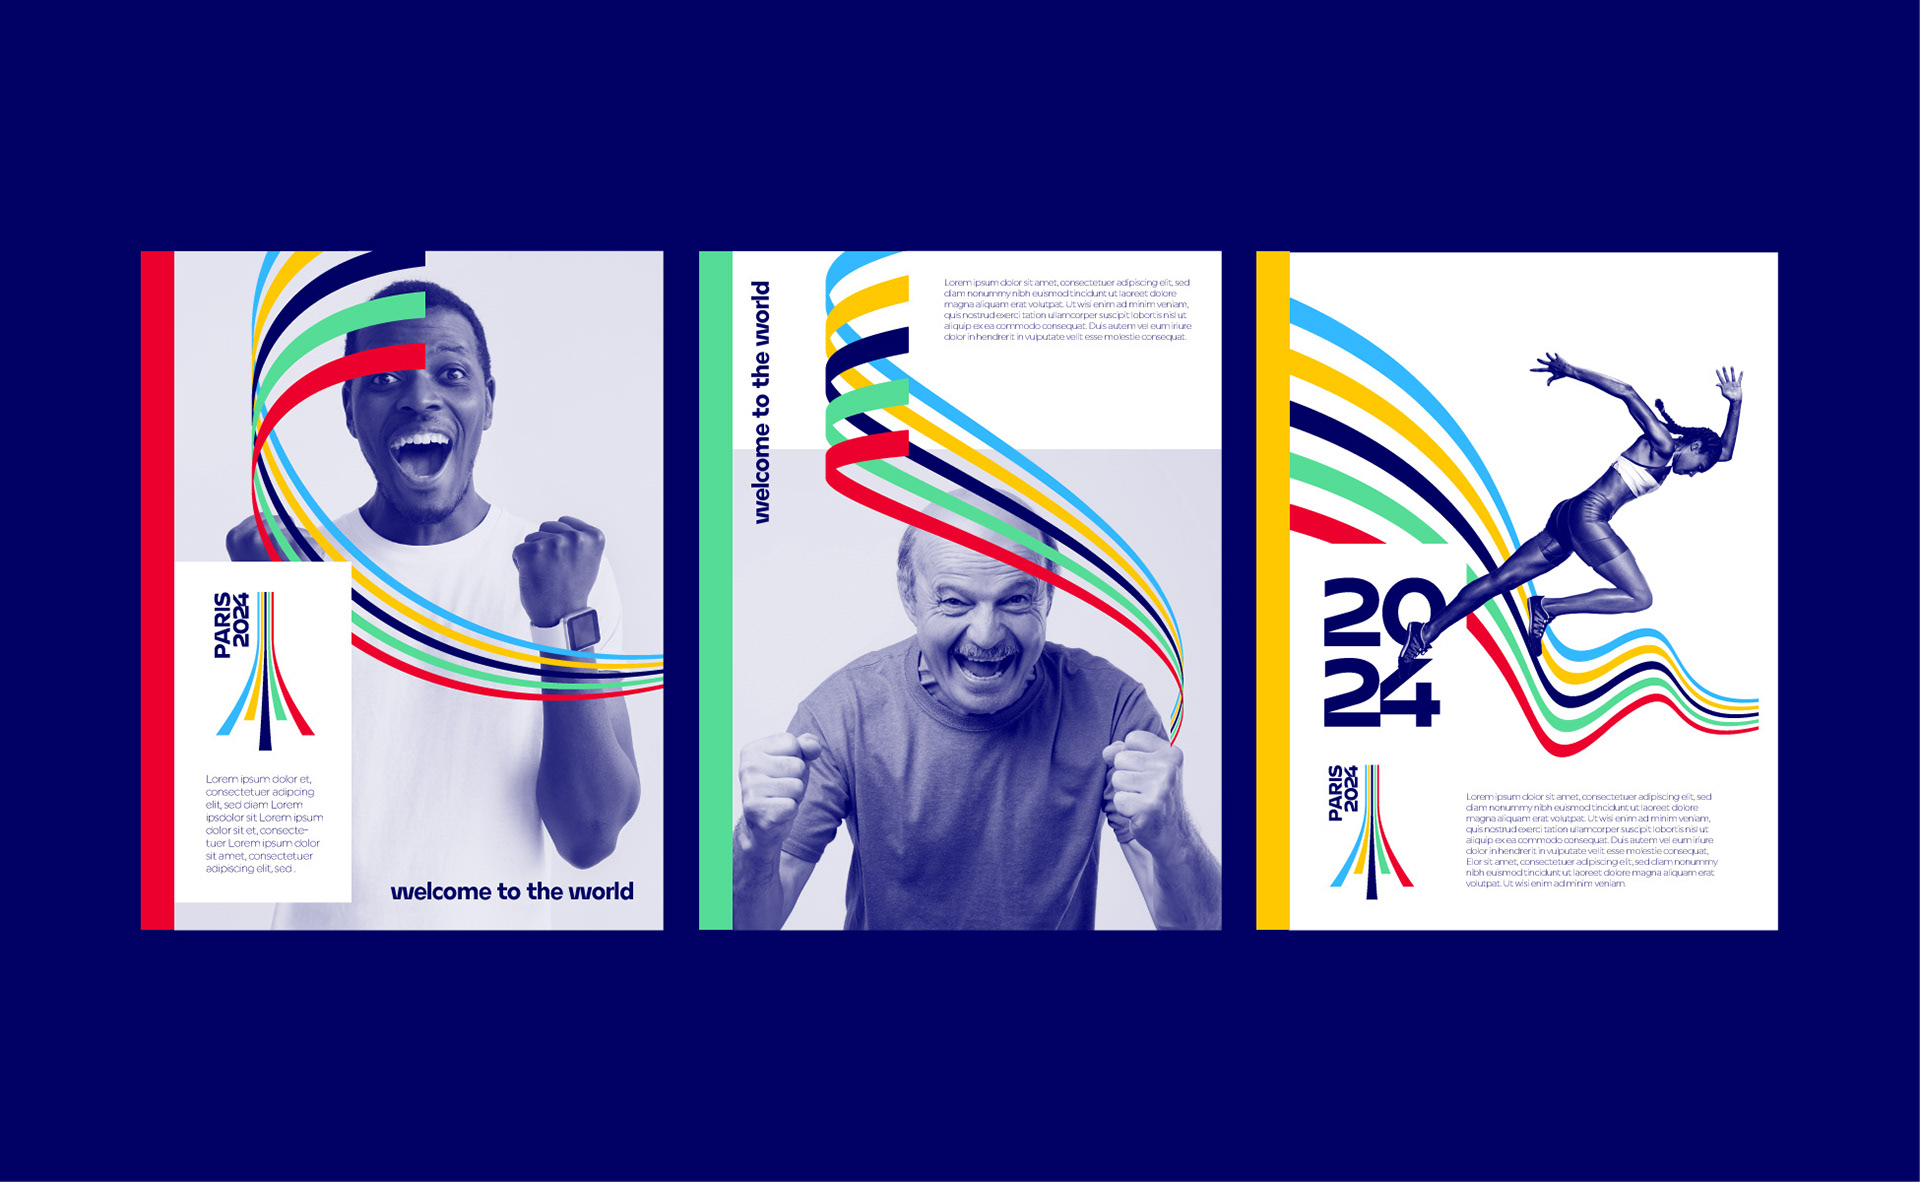 Paris 2024 Olympic Games - Brand design Graphéine